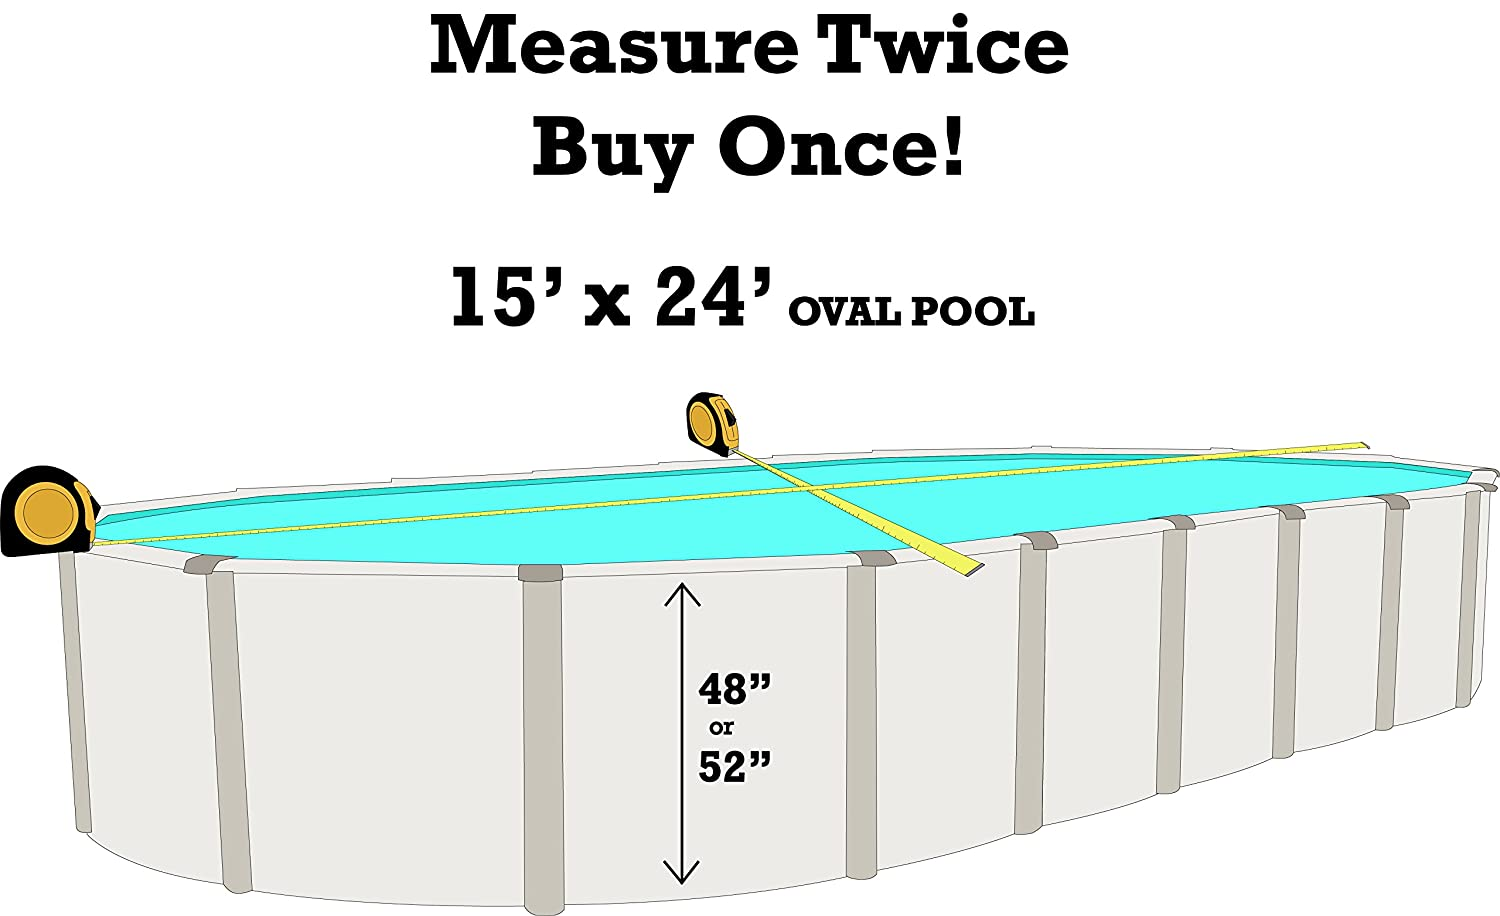 20 Gauge Virgin Vinyl Smartline Boulder Swirl 10-Foot-by-15-Foot Oval Liner 48-to-52-Inch Wall Height Universal Gasket Kit Designed for Steel Sided Above-Ground Swimming Pools Overlap Style